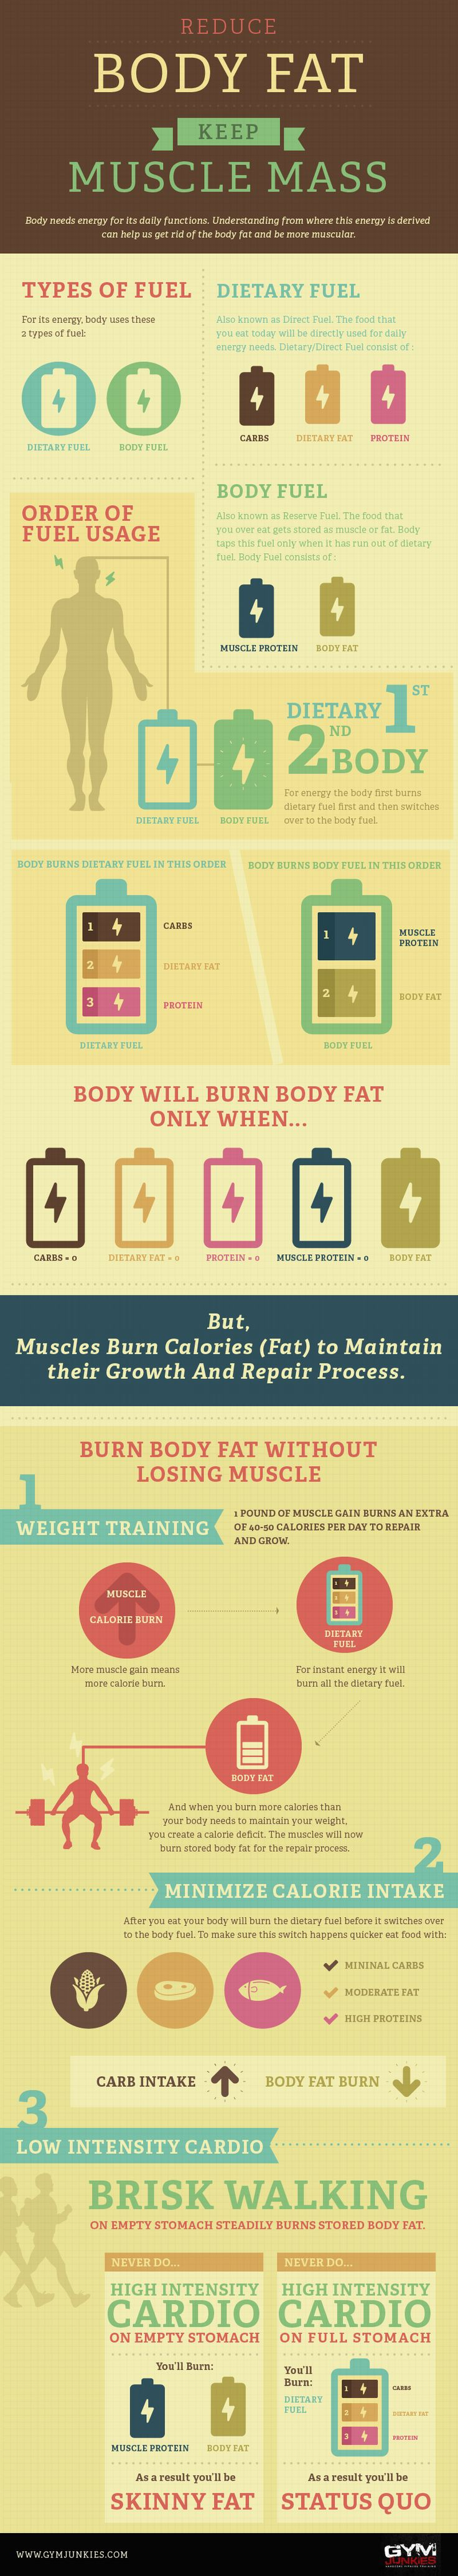 Reduce Your Body Fat Keep Muscle Mass #BodyFat #Diet #Fitness #infographic